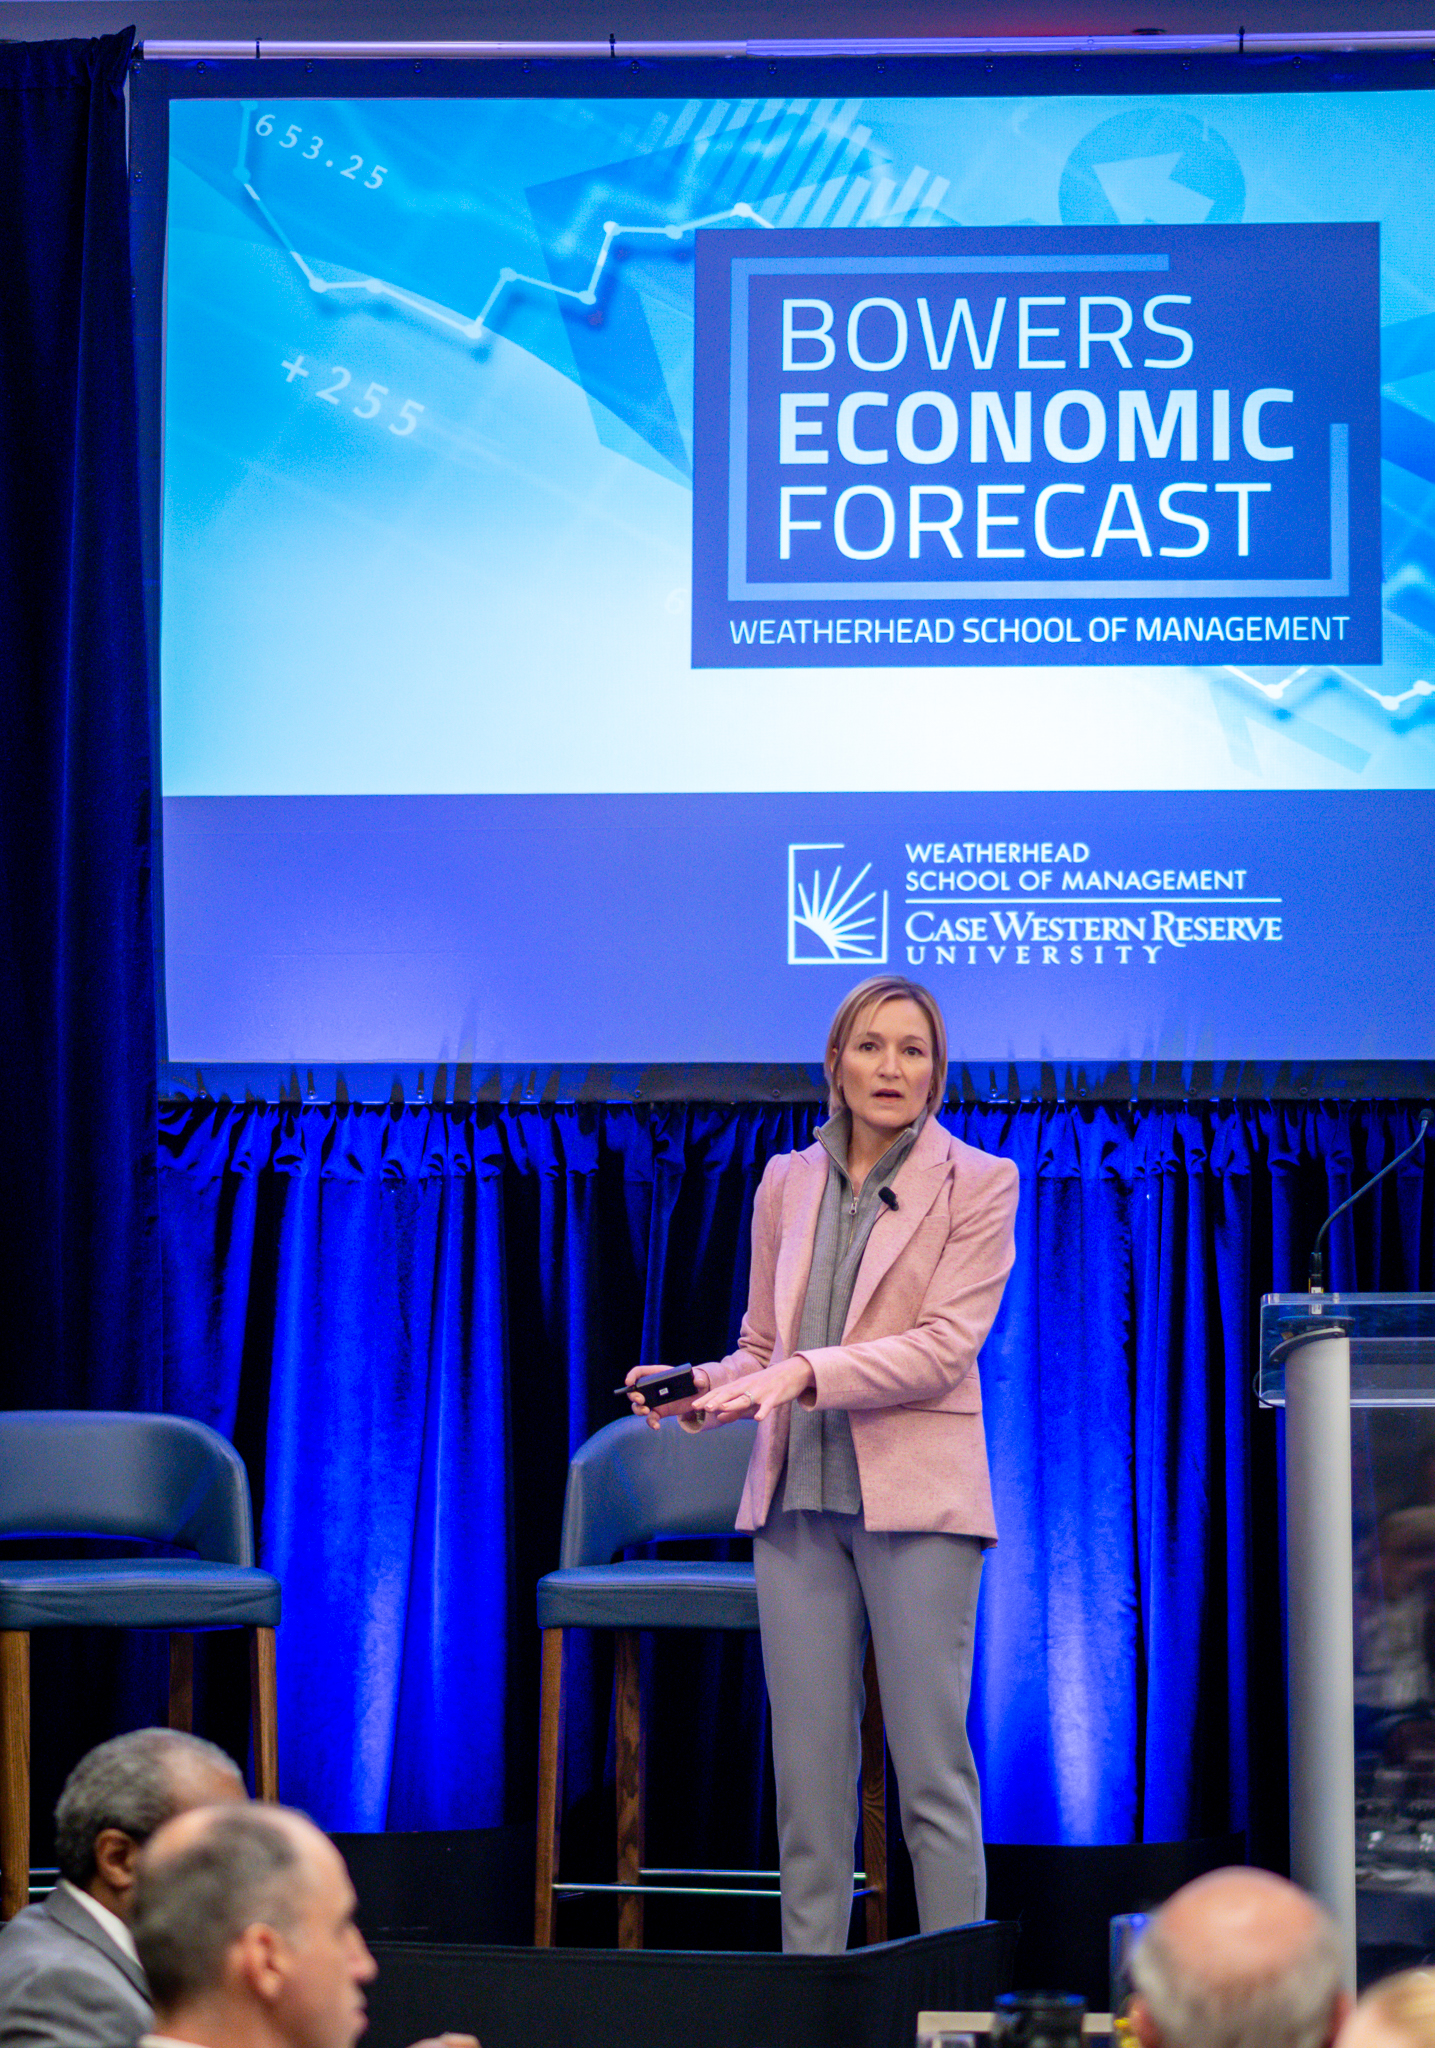 Morgan Stanley's Chief U.S. Economist Ellen Zentner Presents Economic Forecast, Connects with Case Western Reserve Students